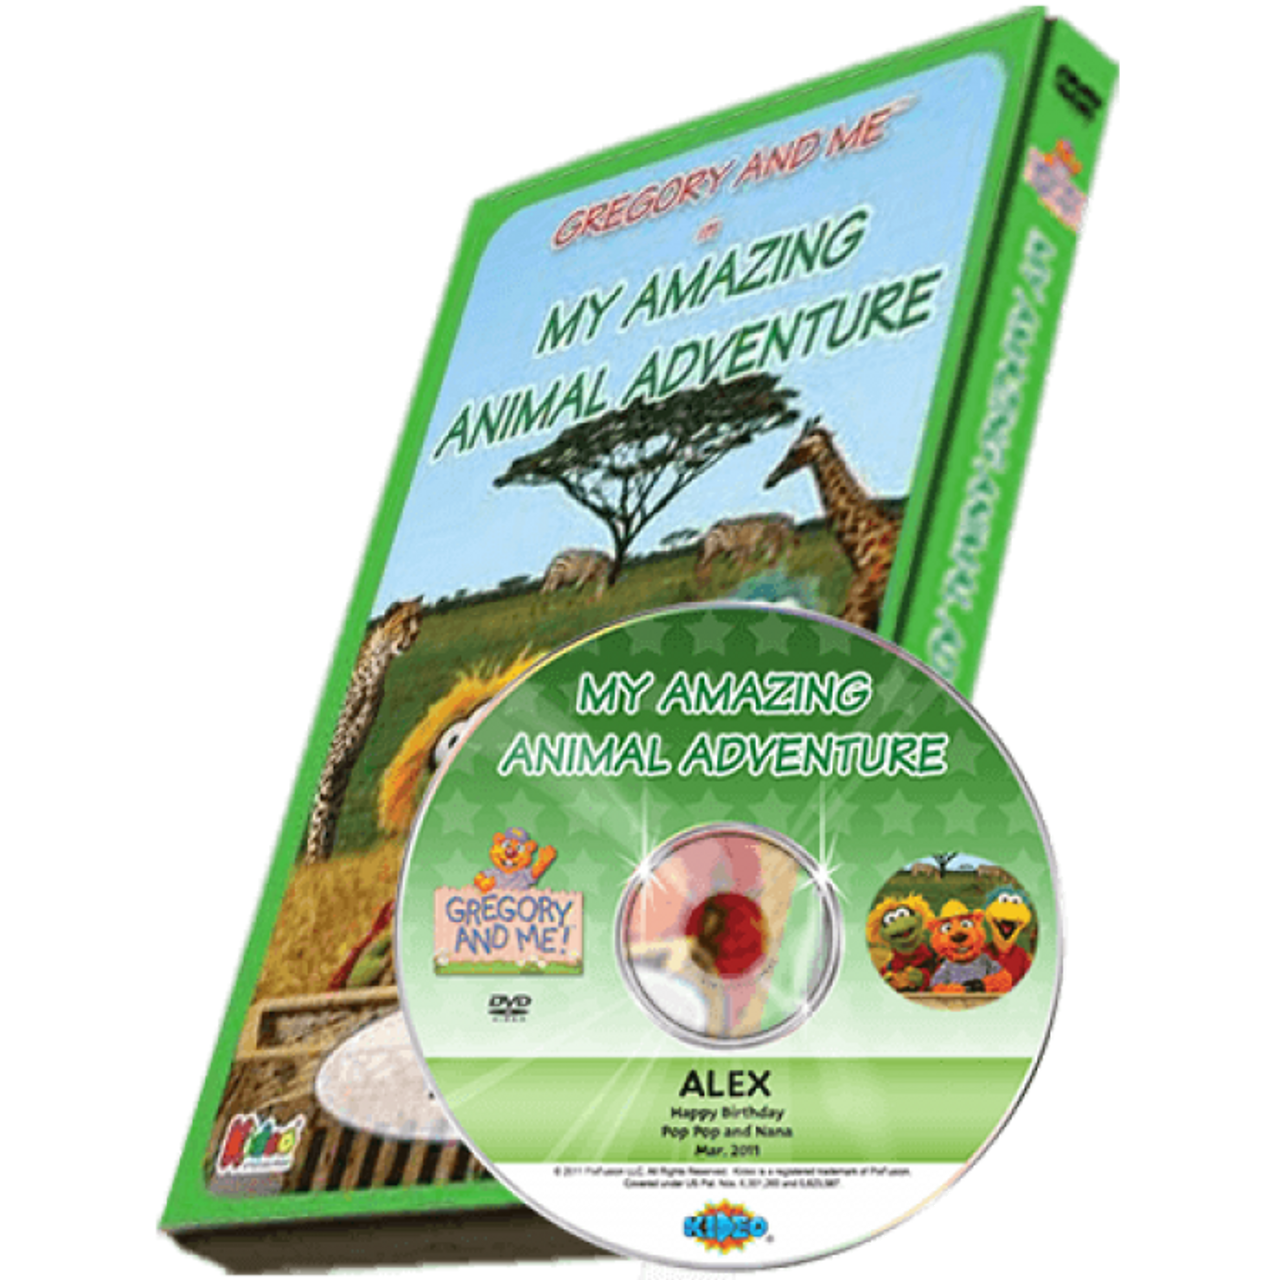 Amazing Animal Adventure Personalized Dvd For Kids Personally Yours Books